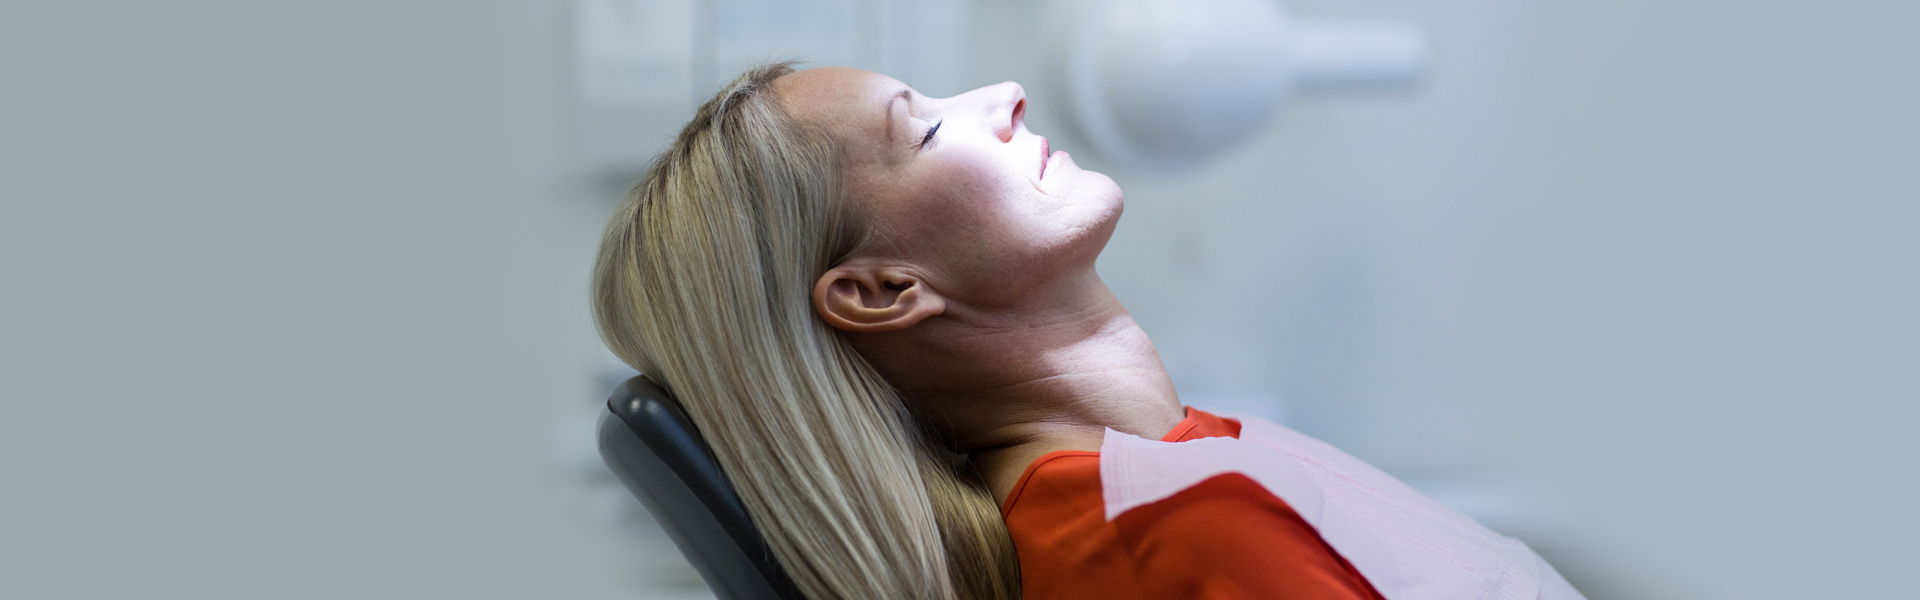 Compelling Reasons for You to Consider Sedation Dentistry